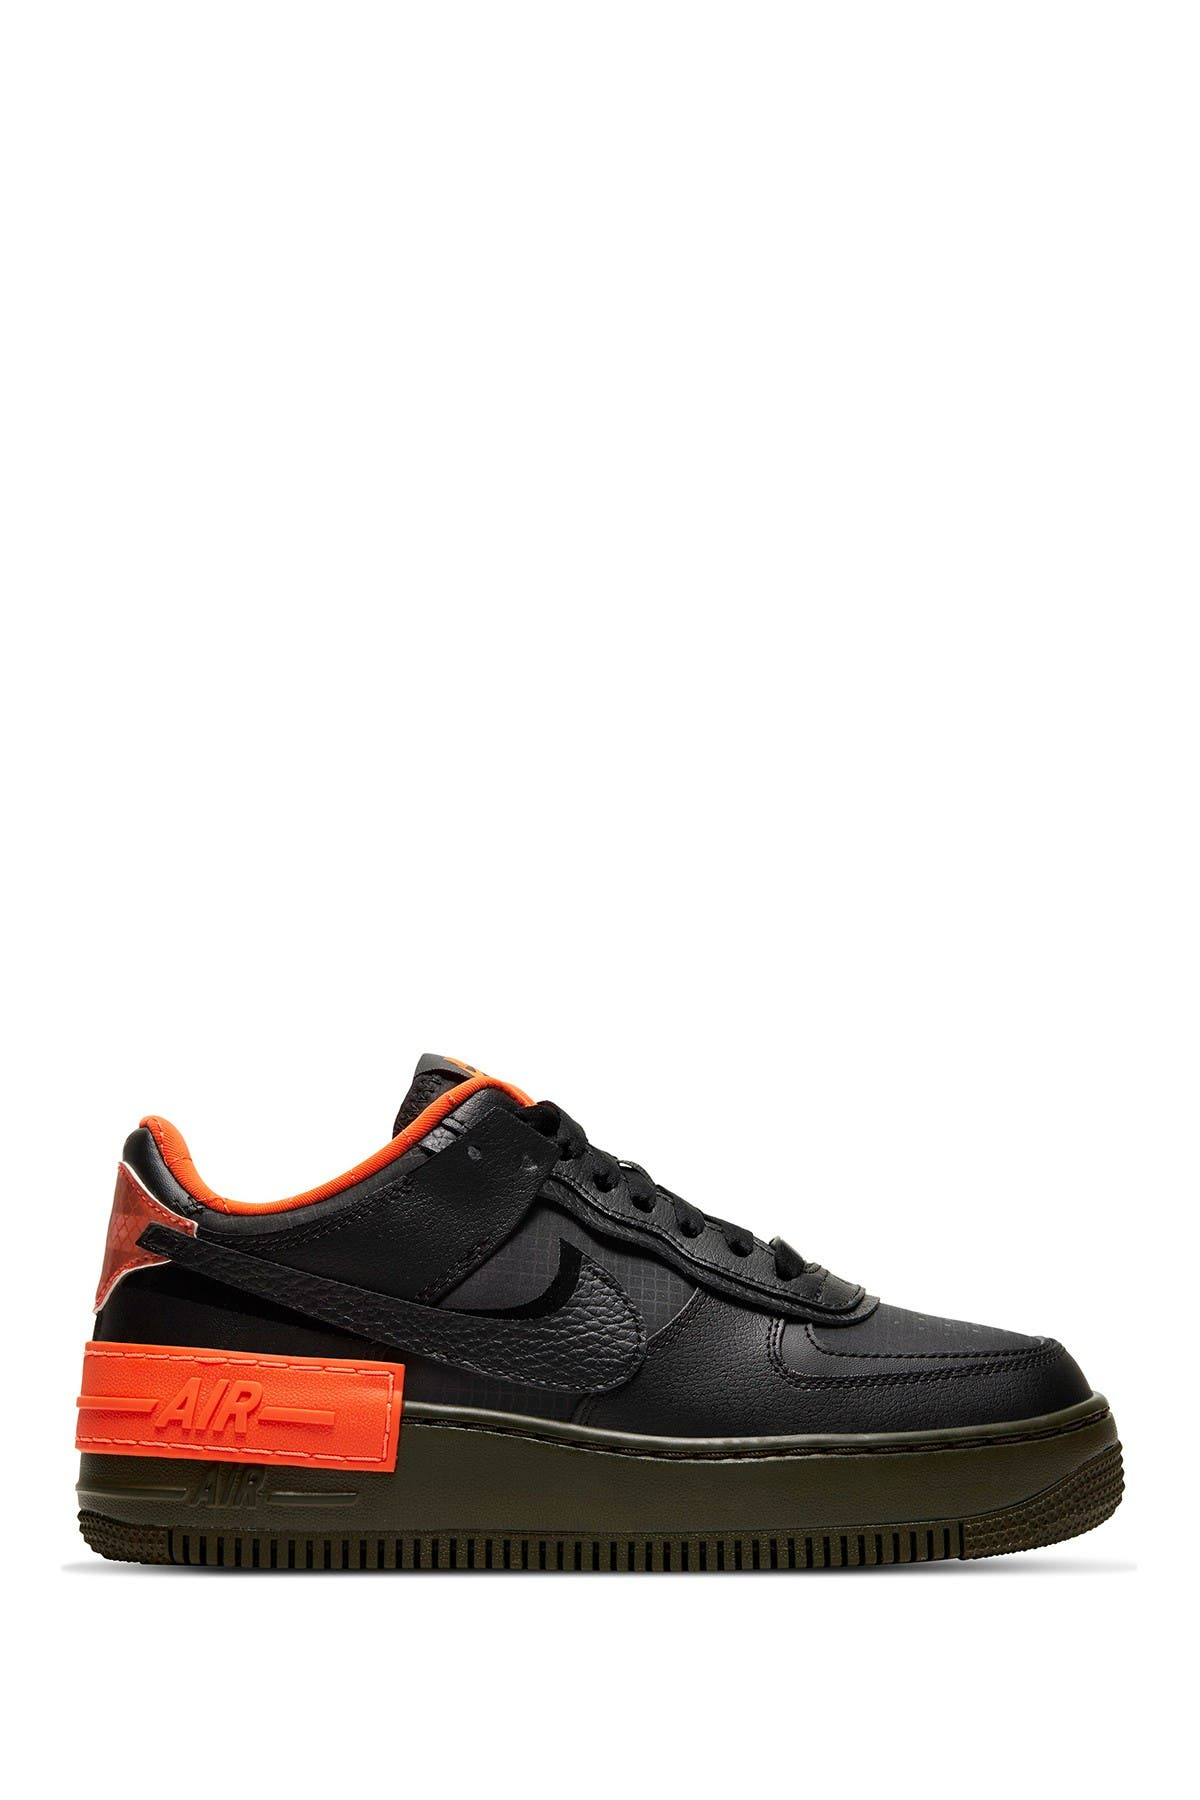 Nike Air Force 1 Shadow Sneaker Nordstrom Rack Shadow pieces for a unique play on a classic. nike air force 1 shadow sneaker nordstrom rack